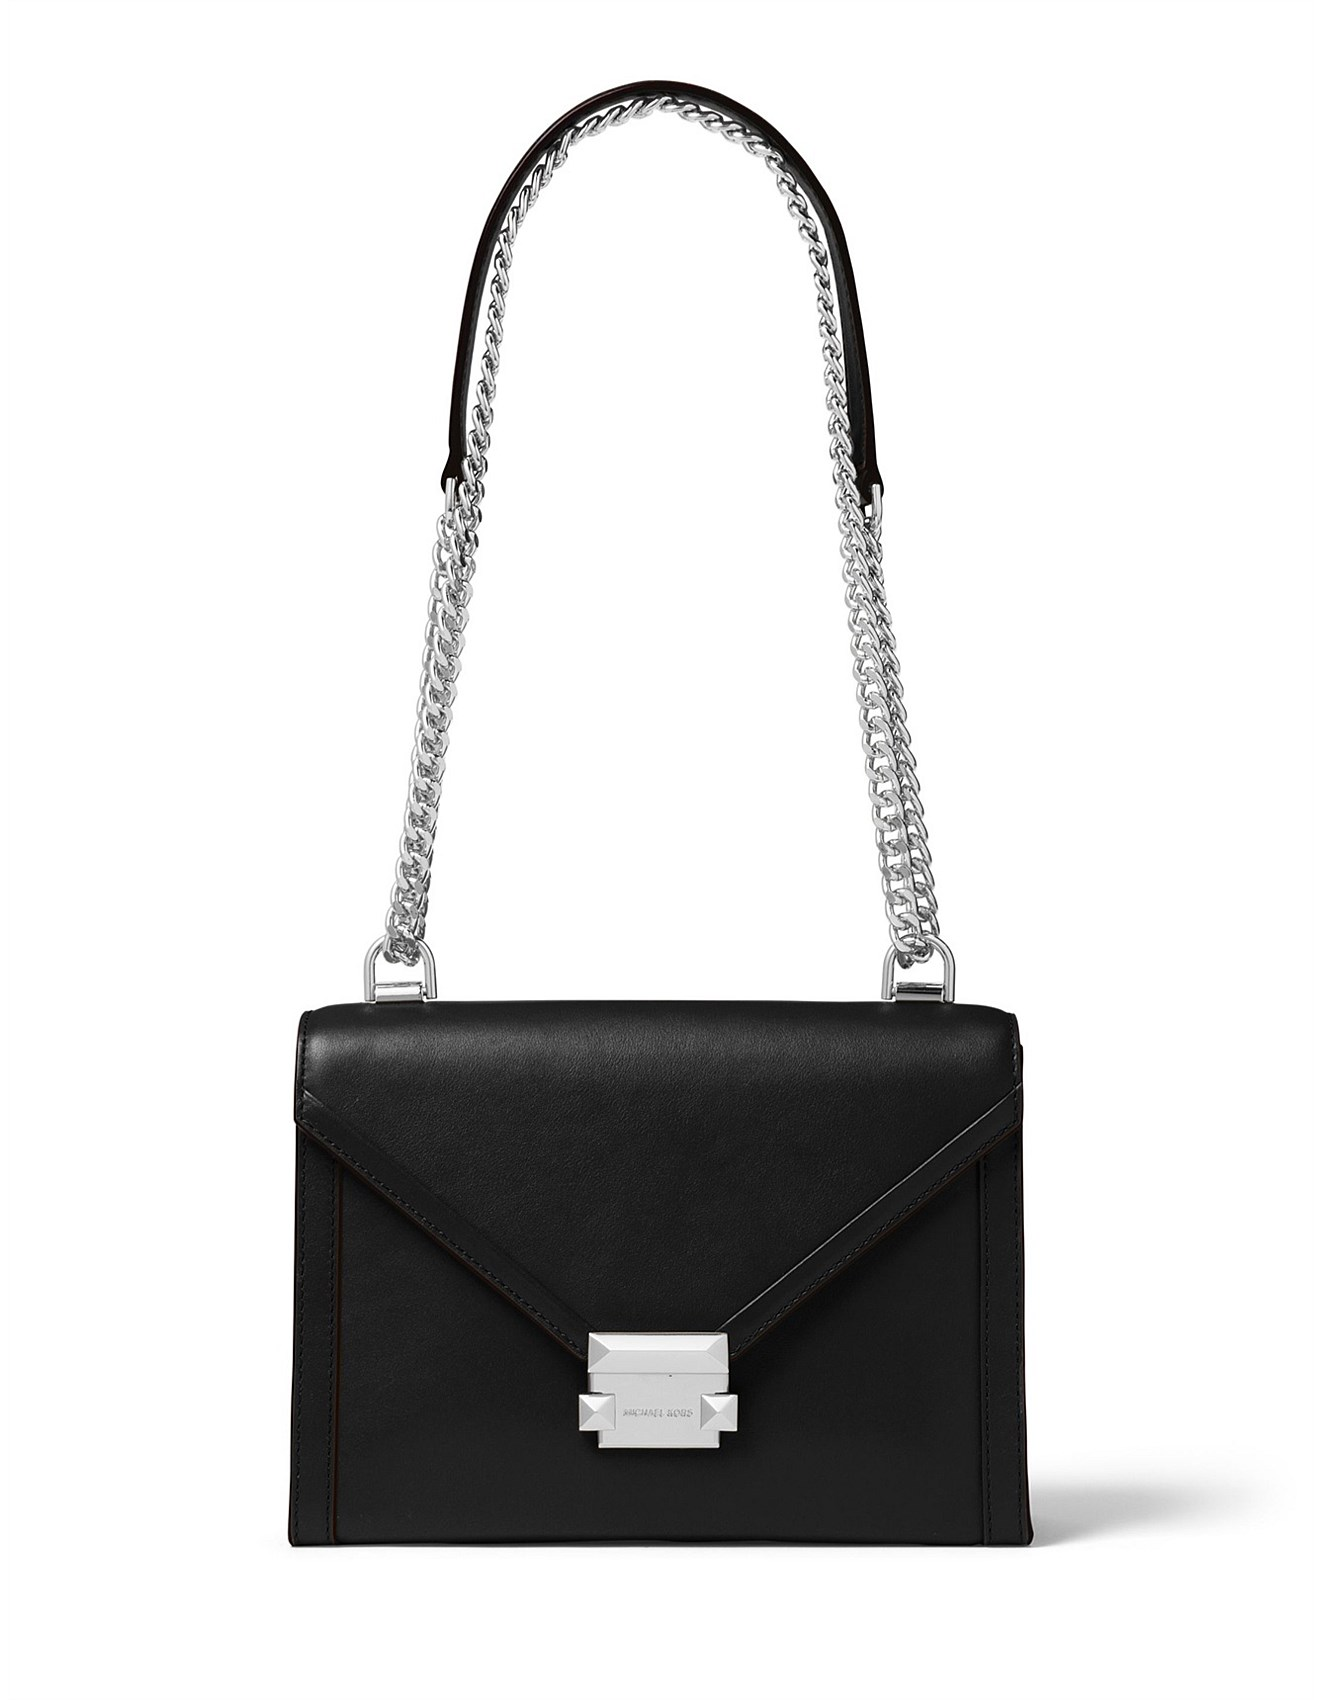 737808c1e9f4 Women - Whitney Large Leather Convertible Shoulder Bag